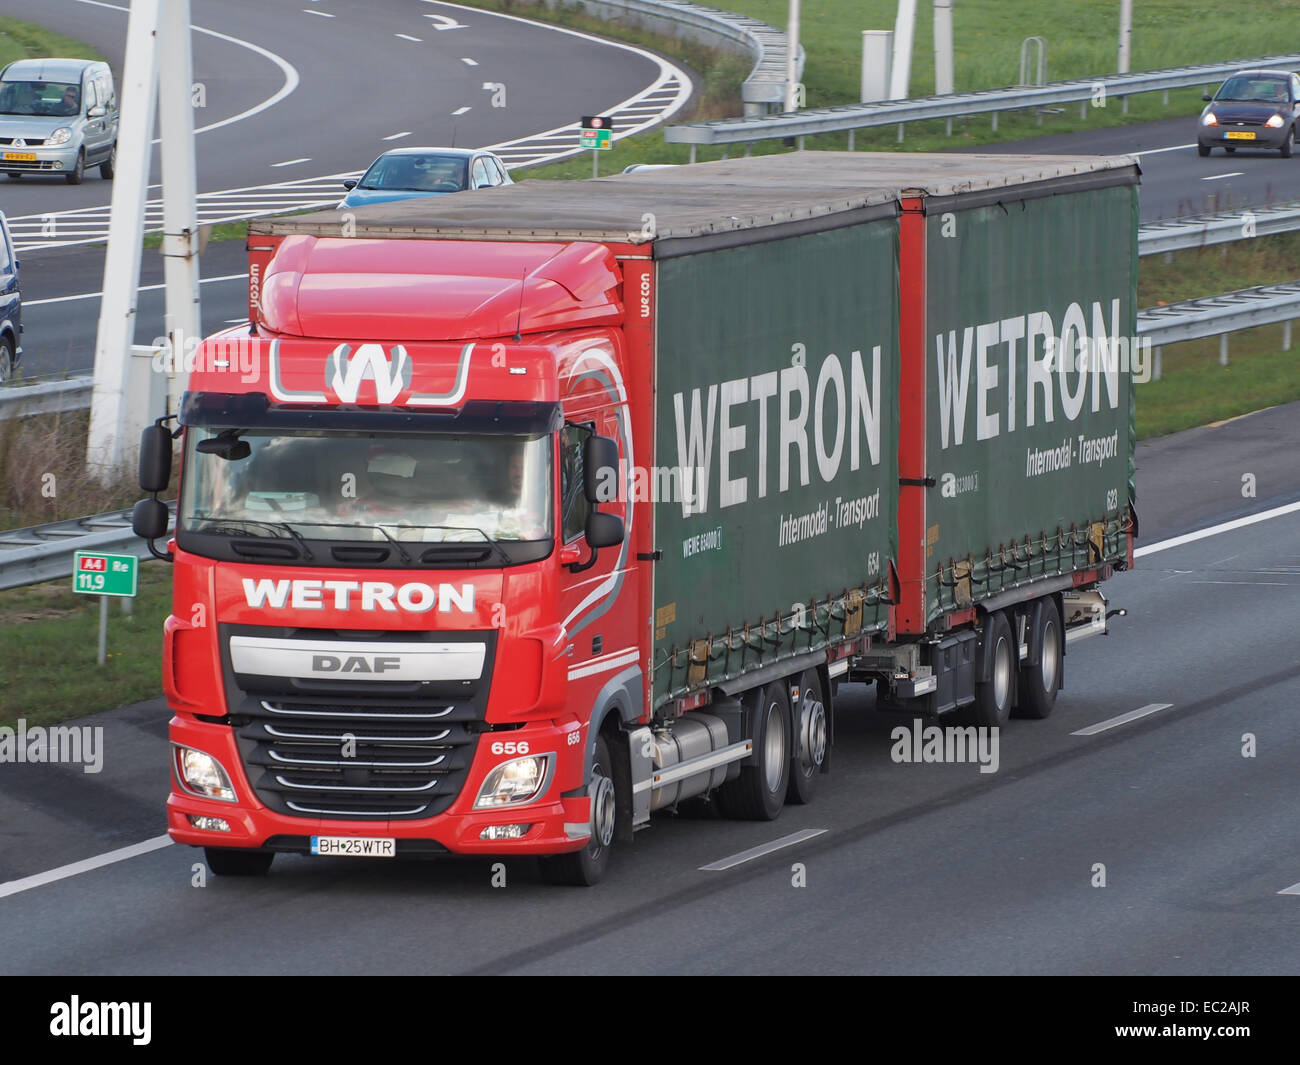 DAF Wetron Intermodal Transport - Stock Image